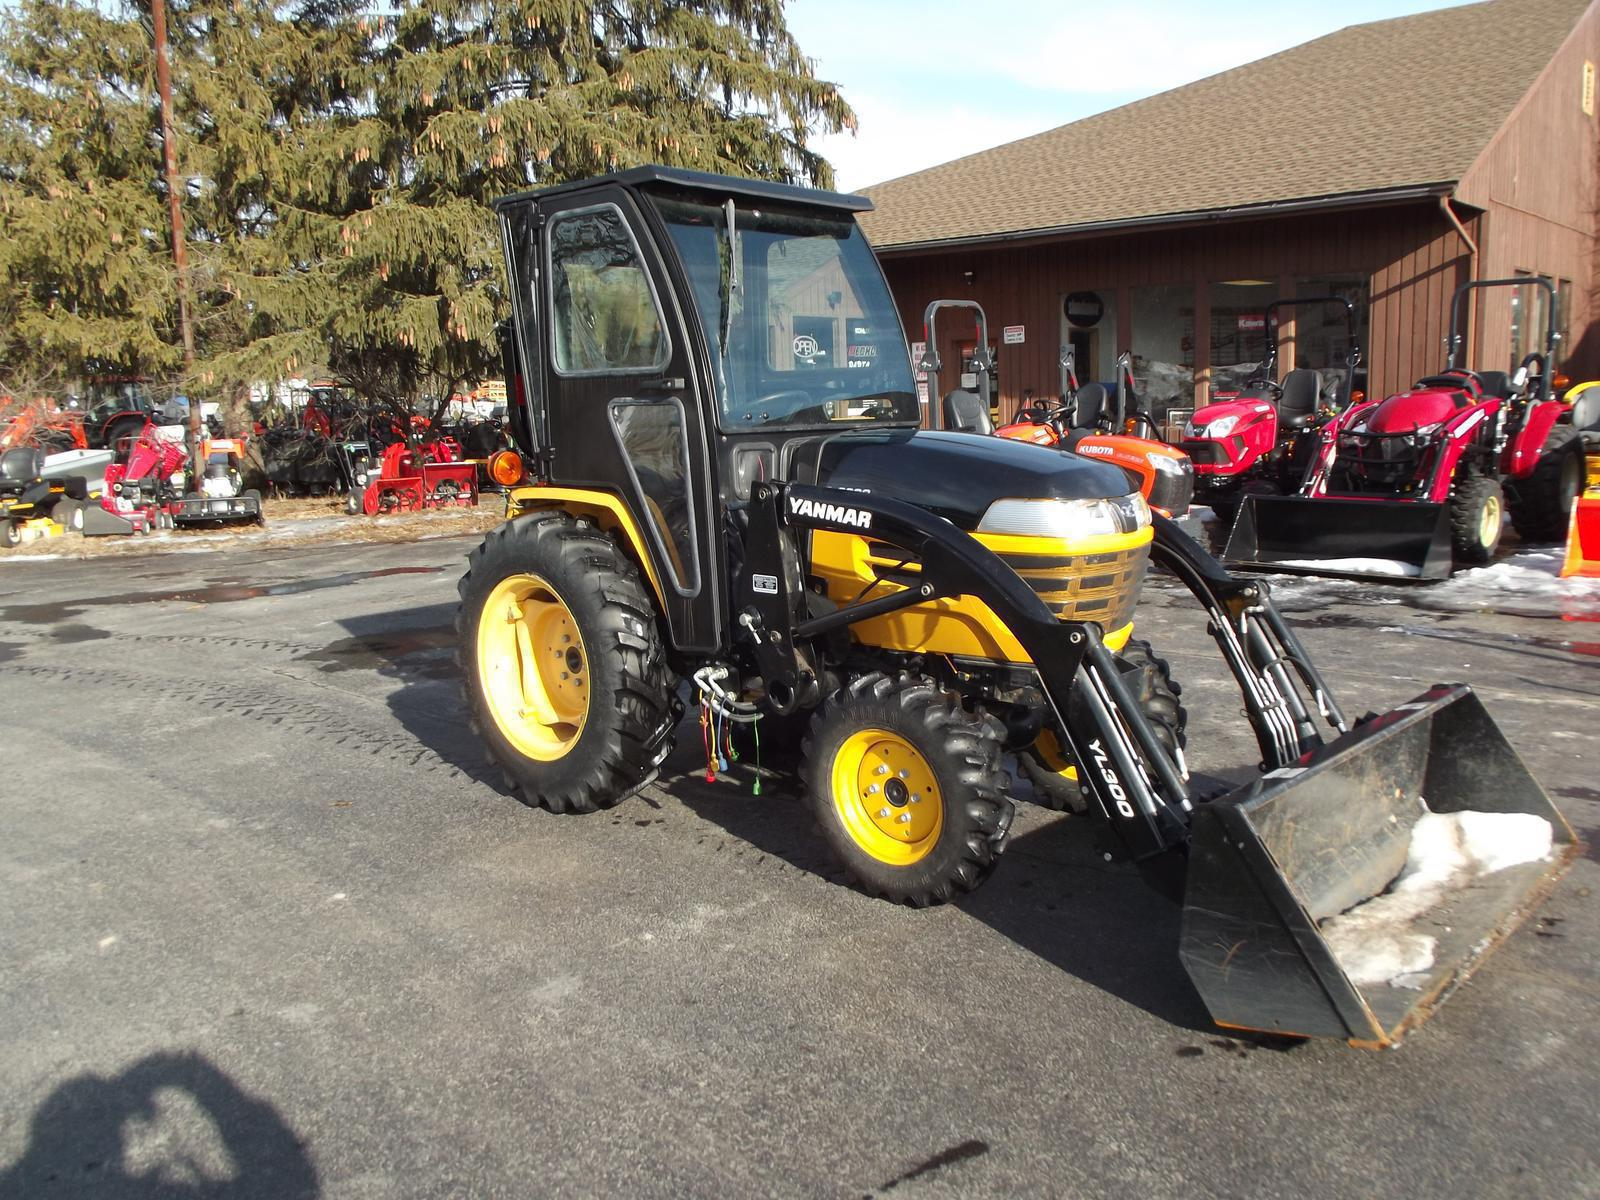 Inventory from Yanmar USA Emerich Sales & Service, Inc